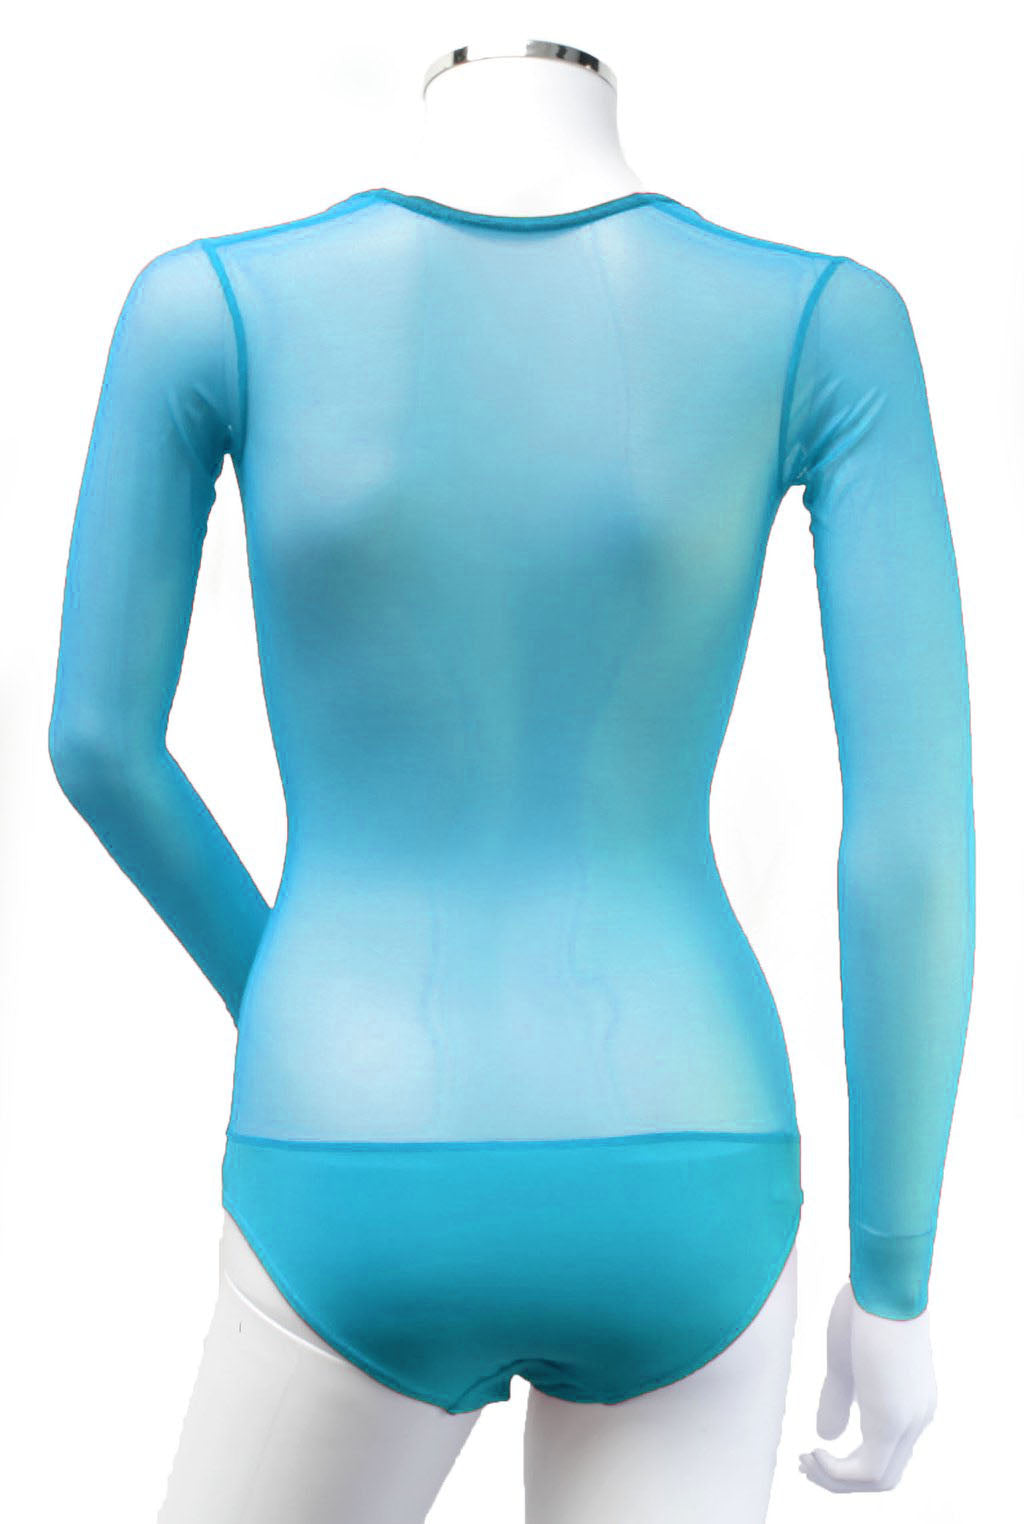 Underbust with Sleeves - Turquoise